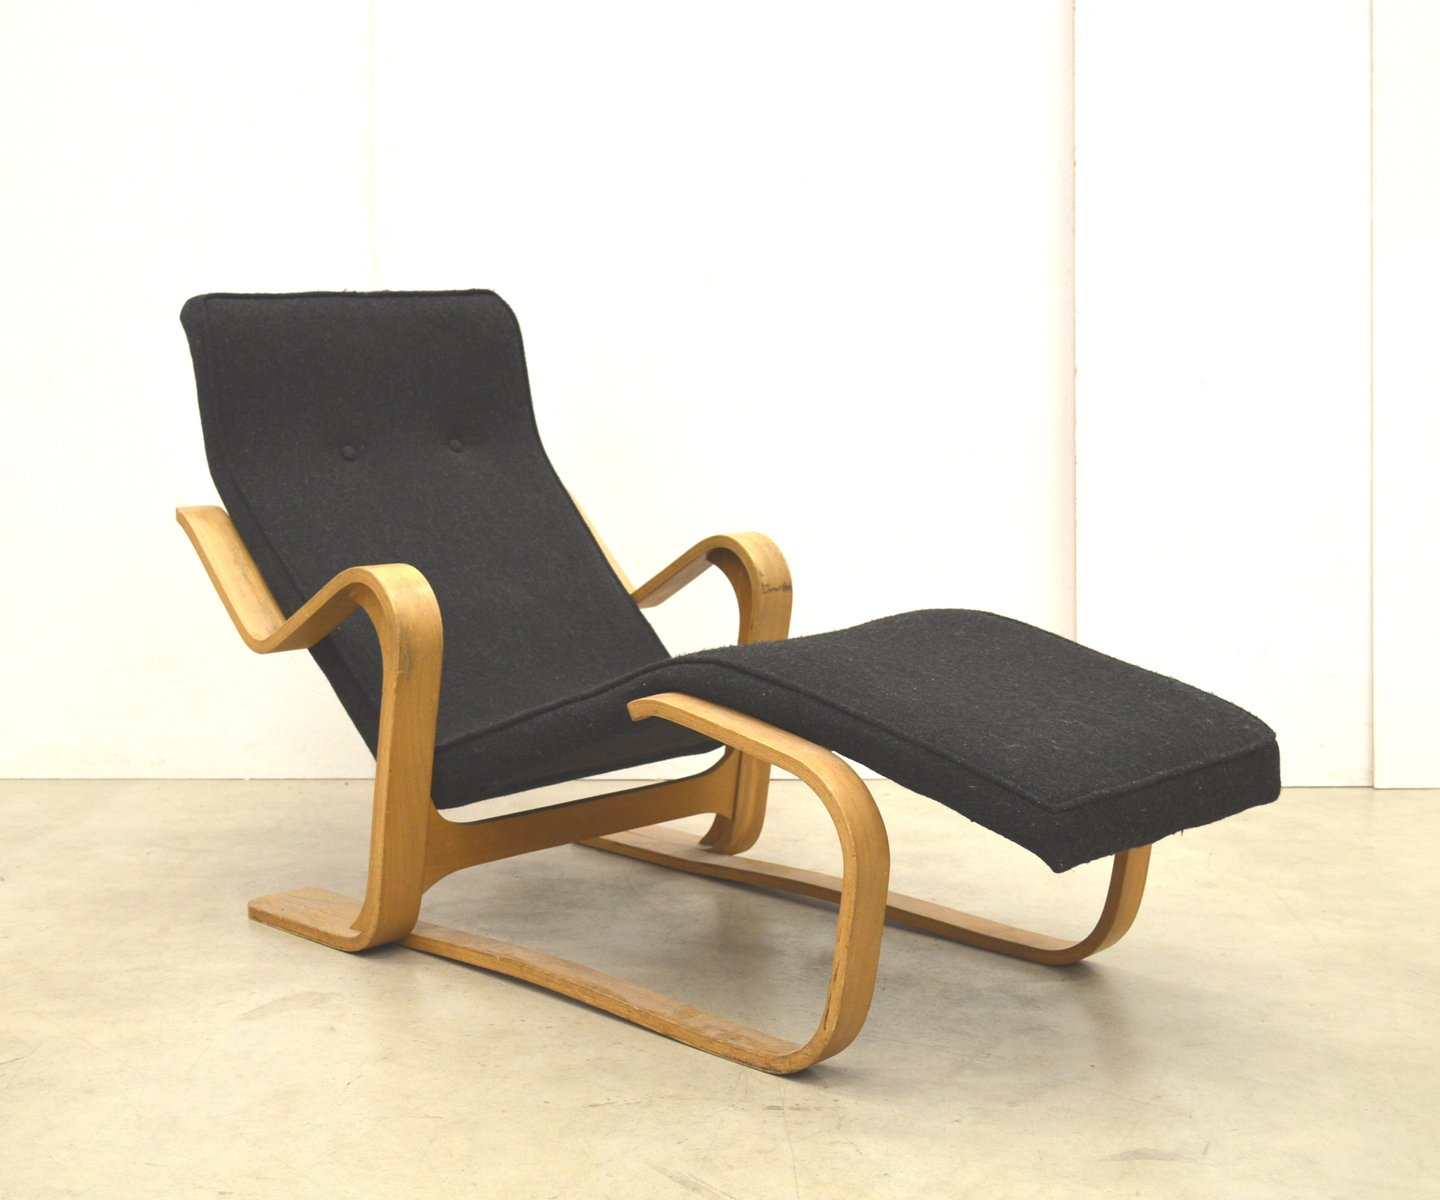 Chaise Longue Suisse Birch Chaise Longue By Marcel Breuer For Isokon 1950s For